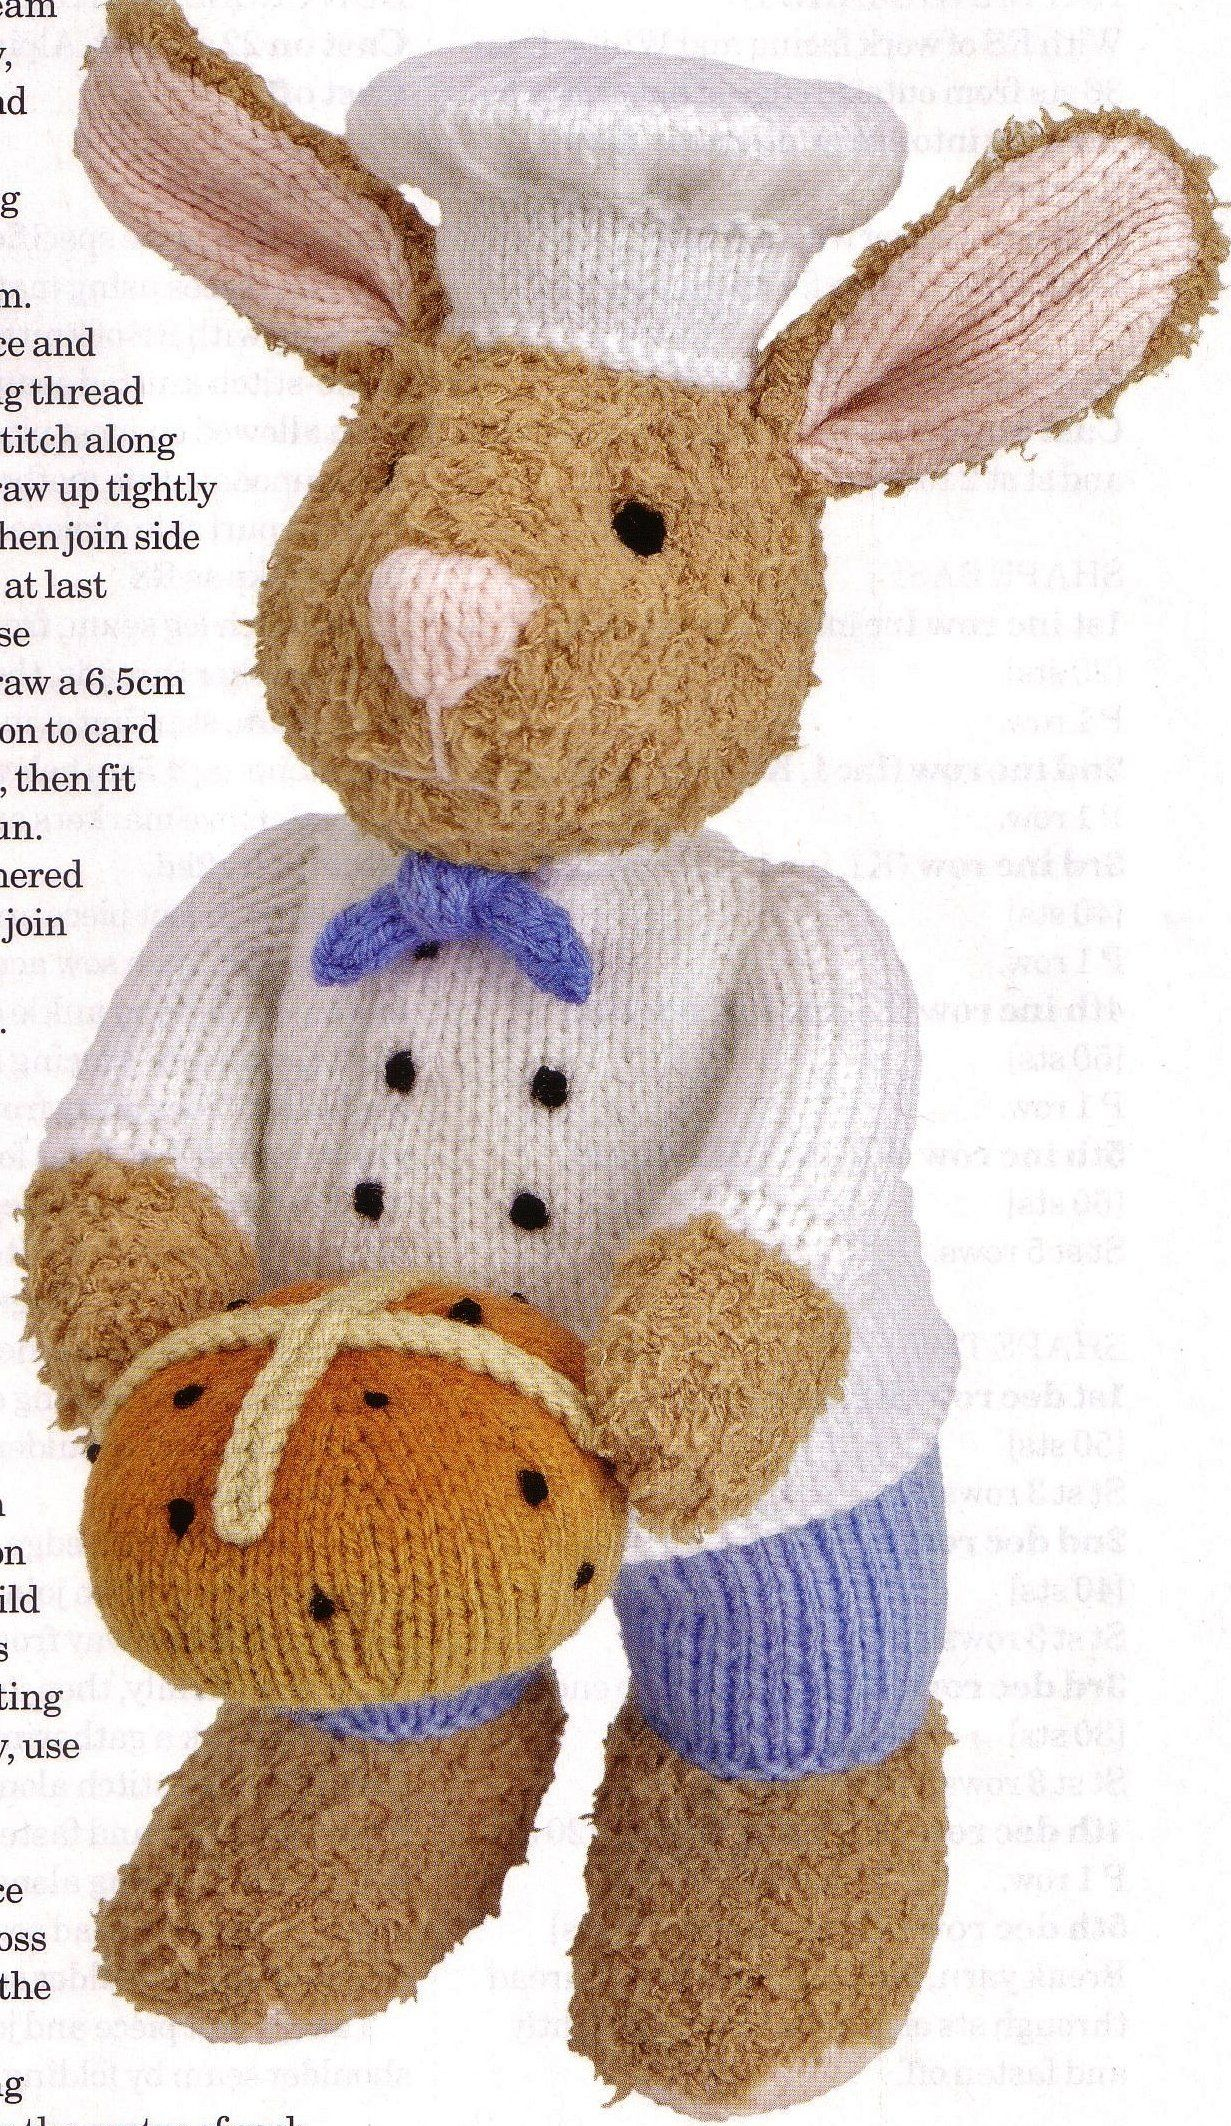 Hot Cross bunny toy knitting pattern by Alan Dart (simply knitting ...